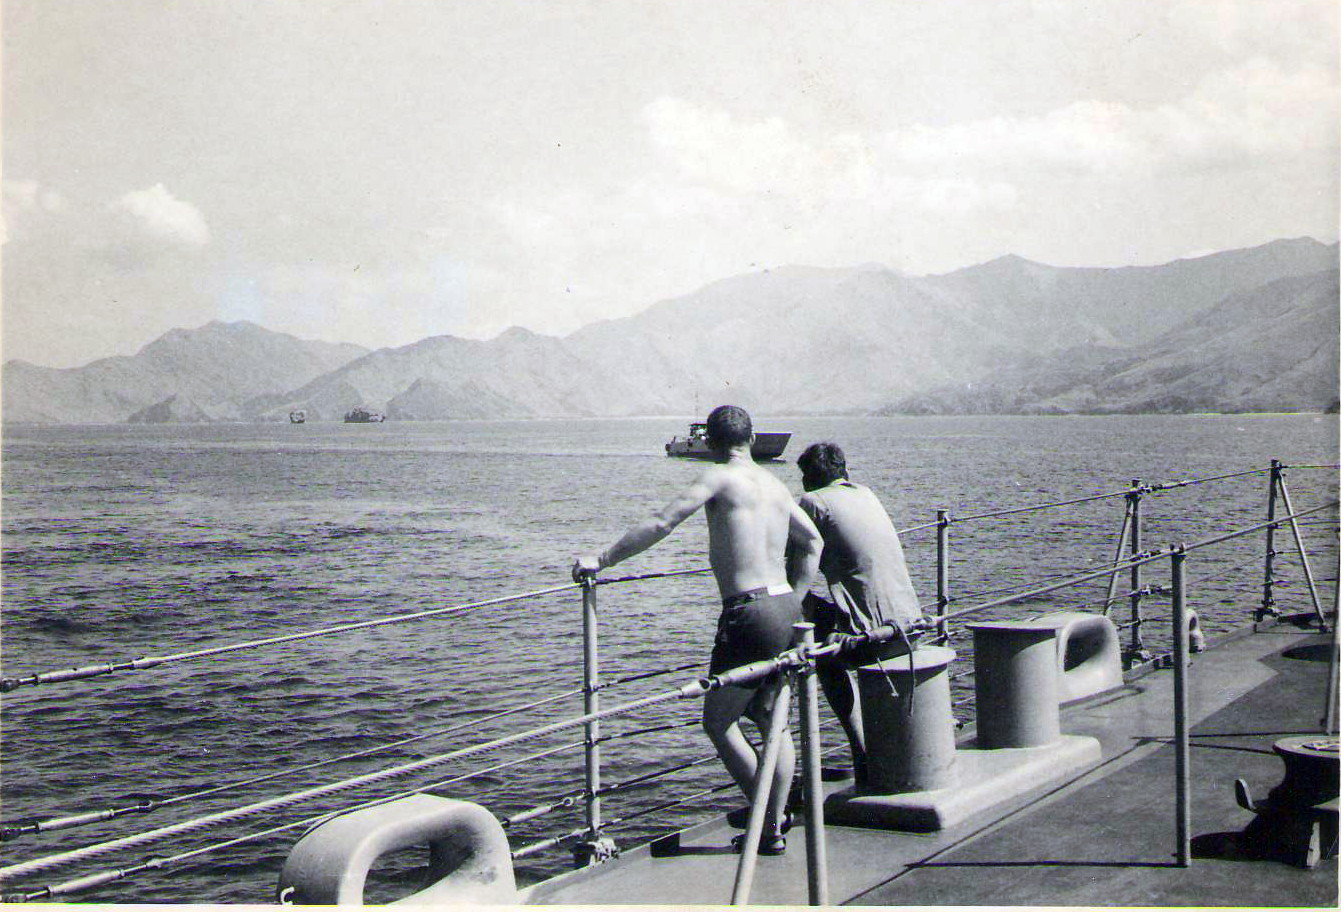 1969 Vietnam at anchor